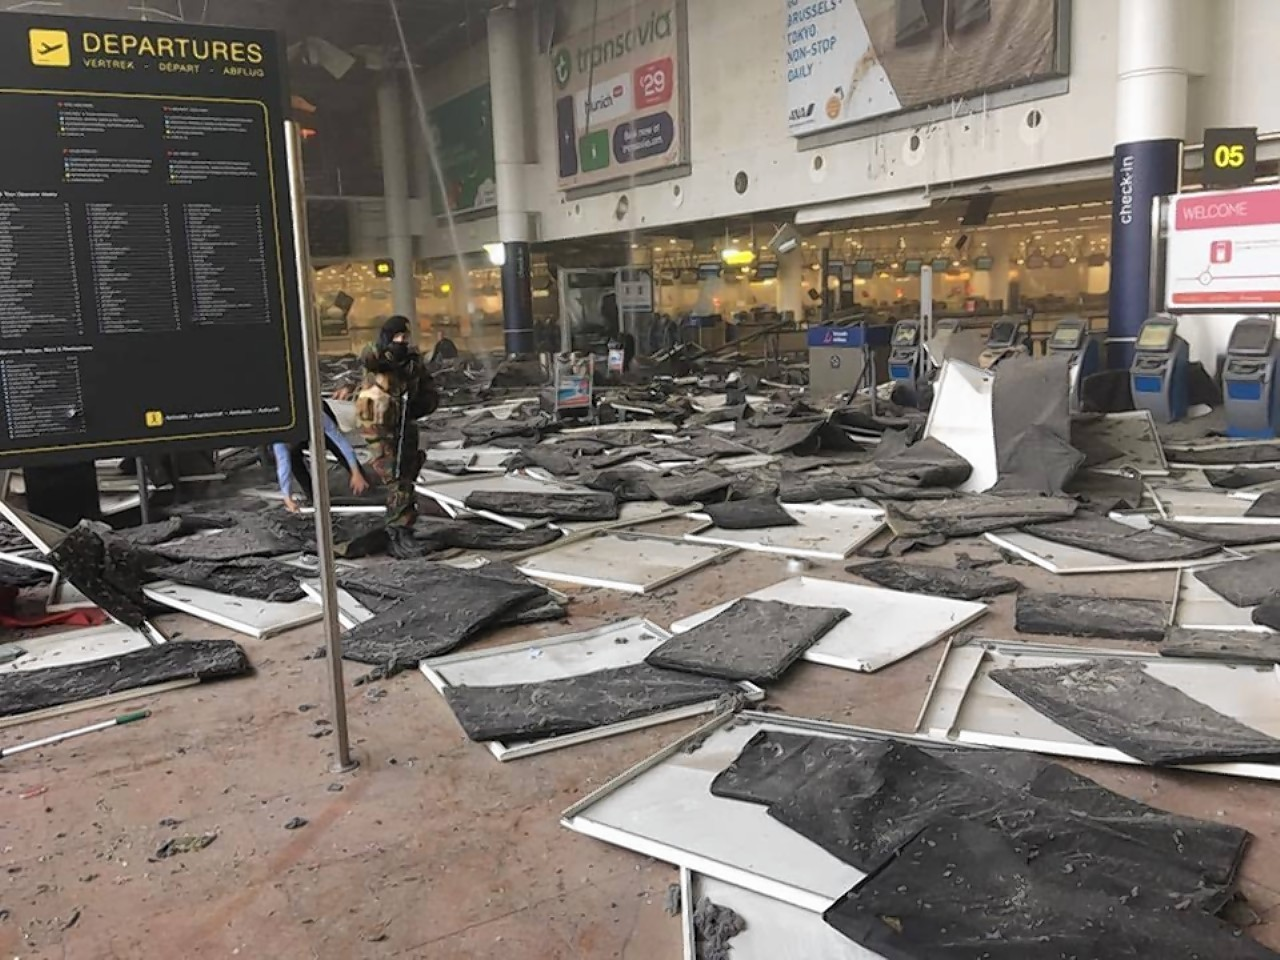 Aftermath of the explosions in Brussels Airport